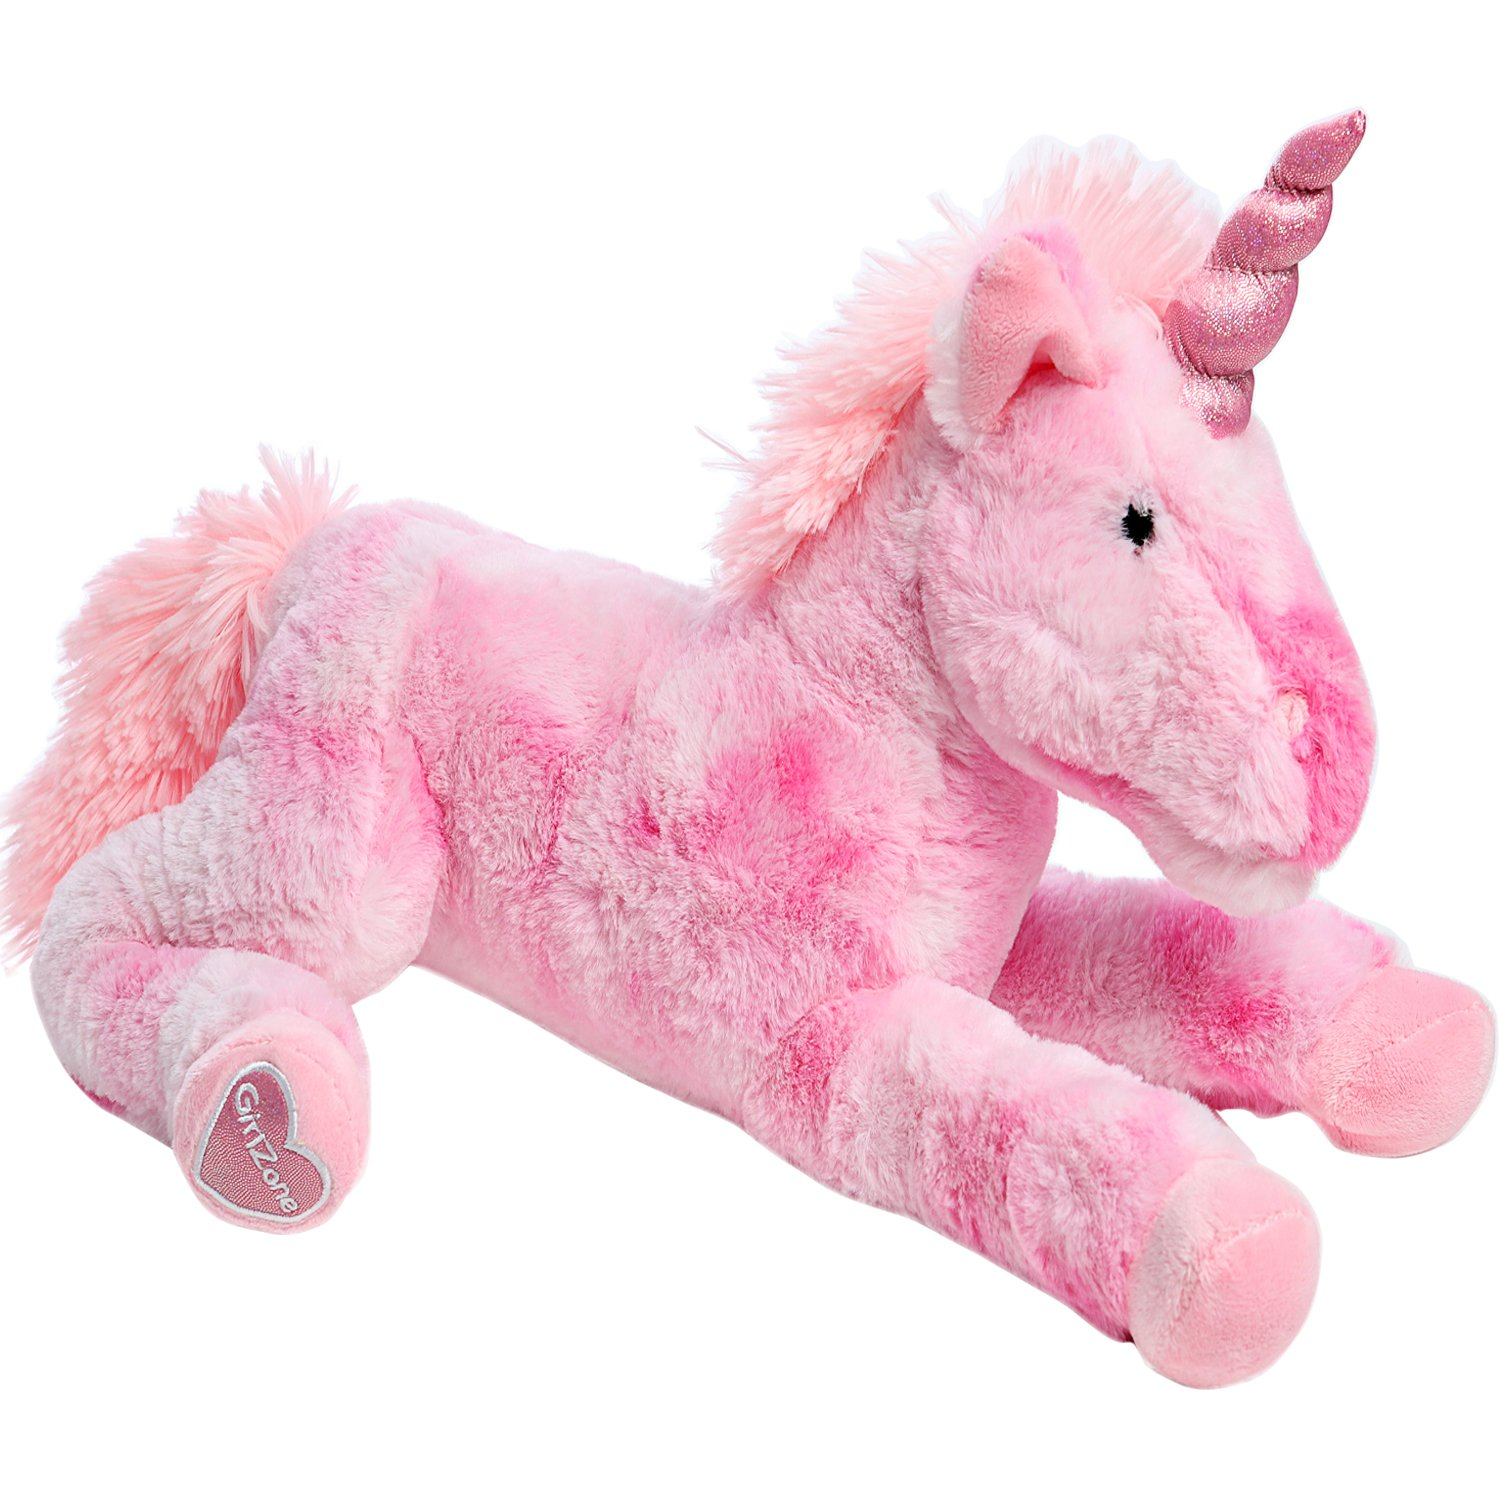 """GirlZone Gifts for Girls: Large 18"""" Pink Plush Stuffed Fluffy Unicorn Animal. Ideal Gift, Birthday Present Gift for Girls Aged 3 4 5 6 7 8 9 Years Old"""